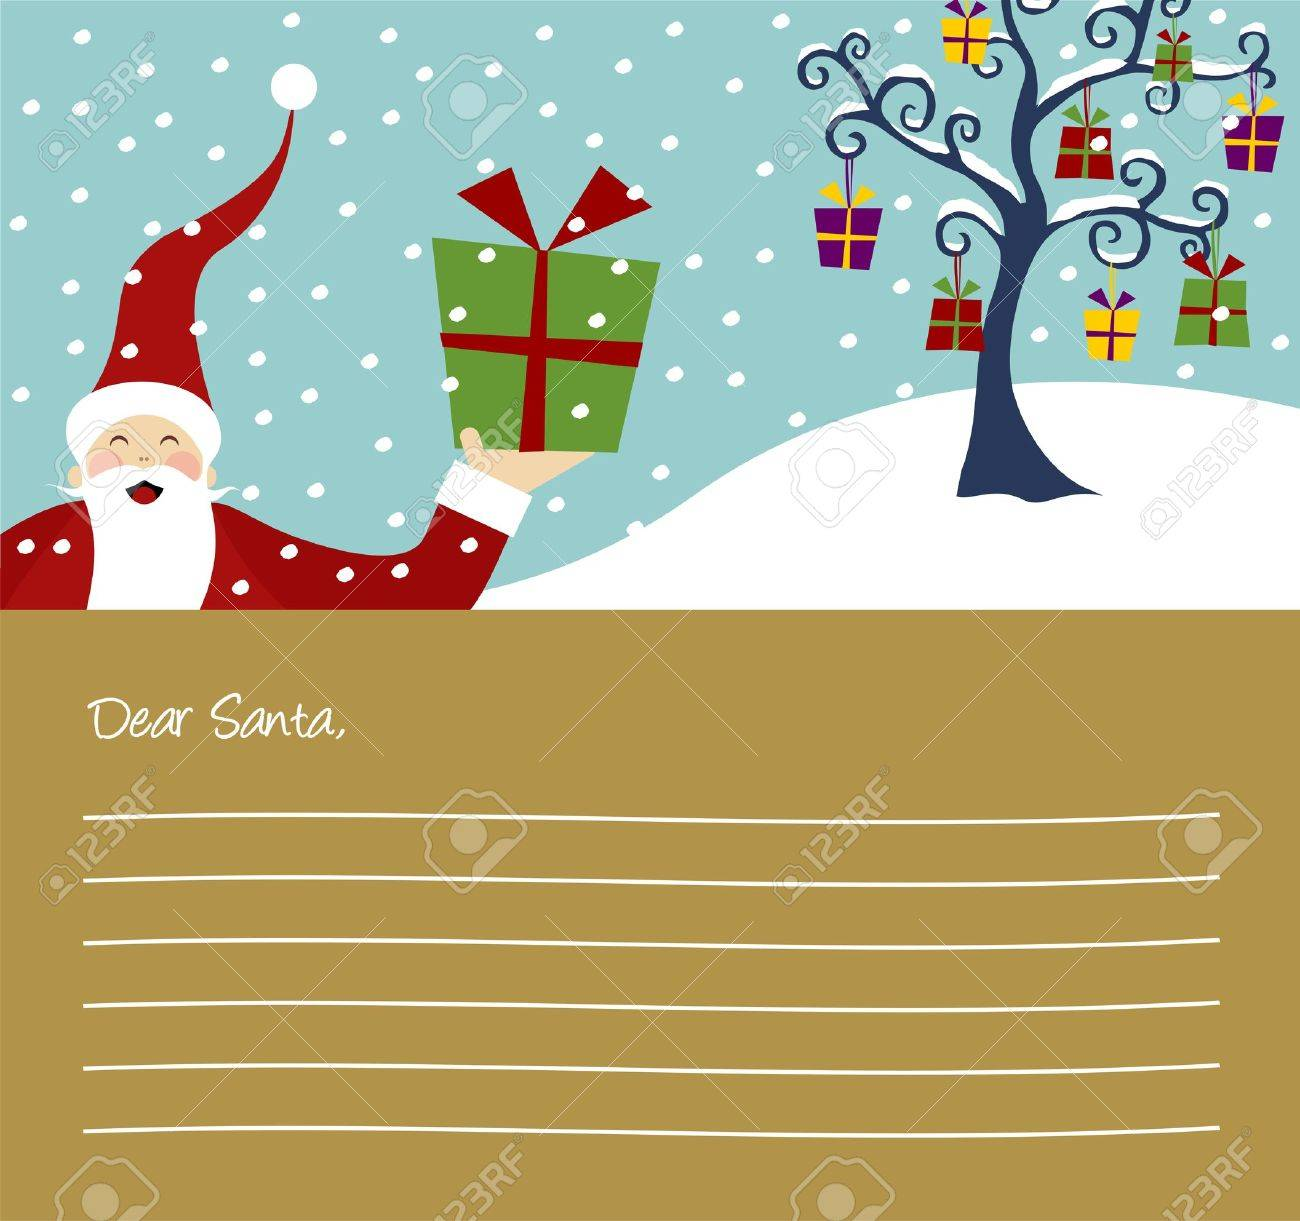 Happy Santa Claus and Christmas tree with lots of gifts letter background Stock Vector - 5876018